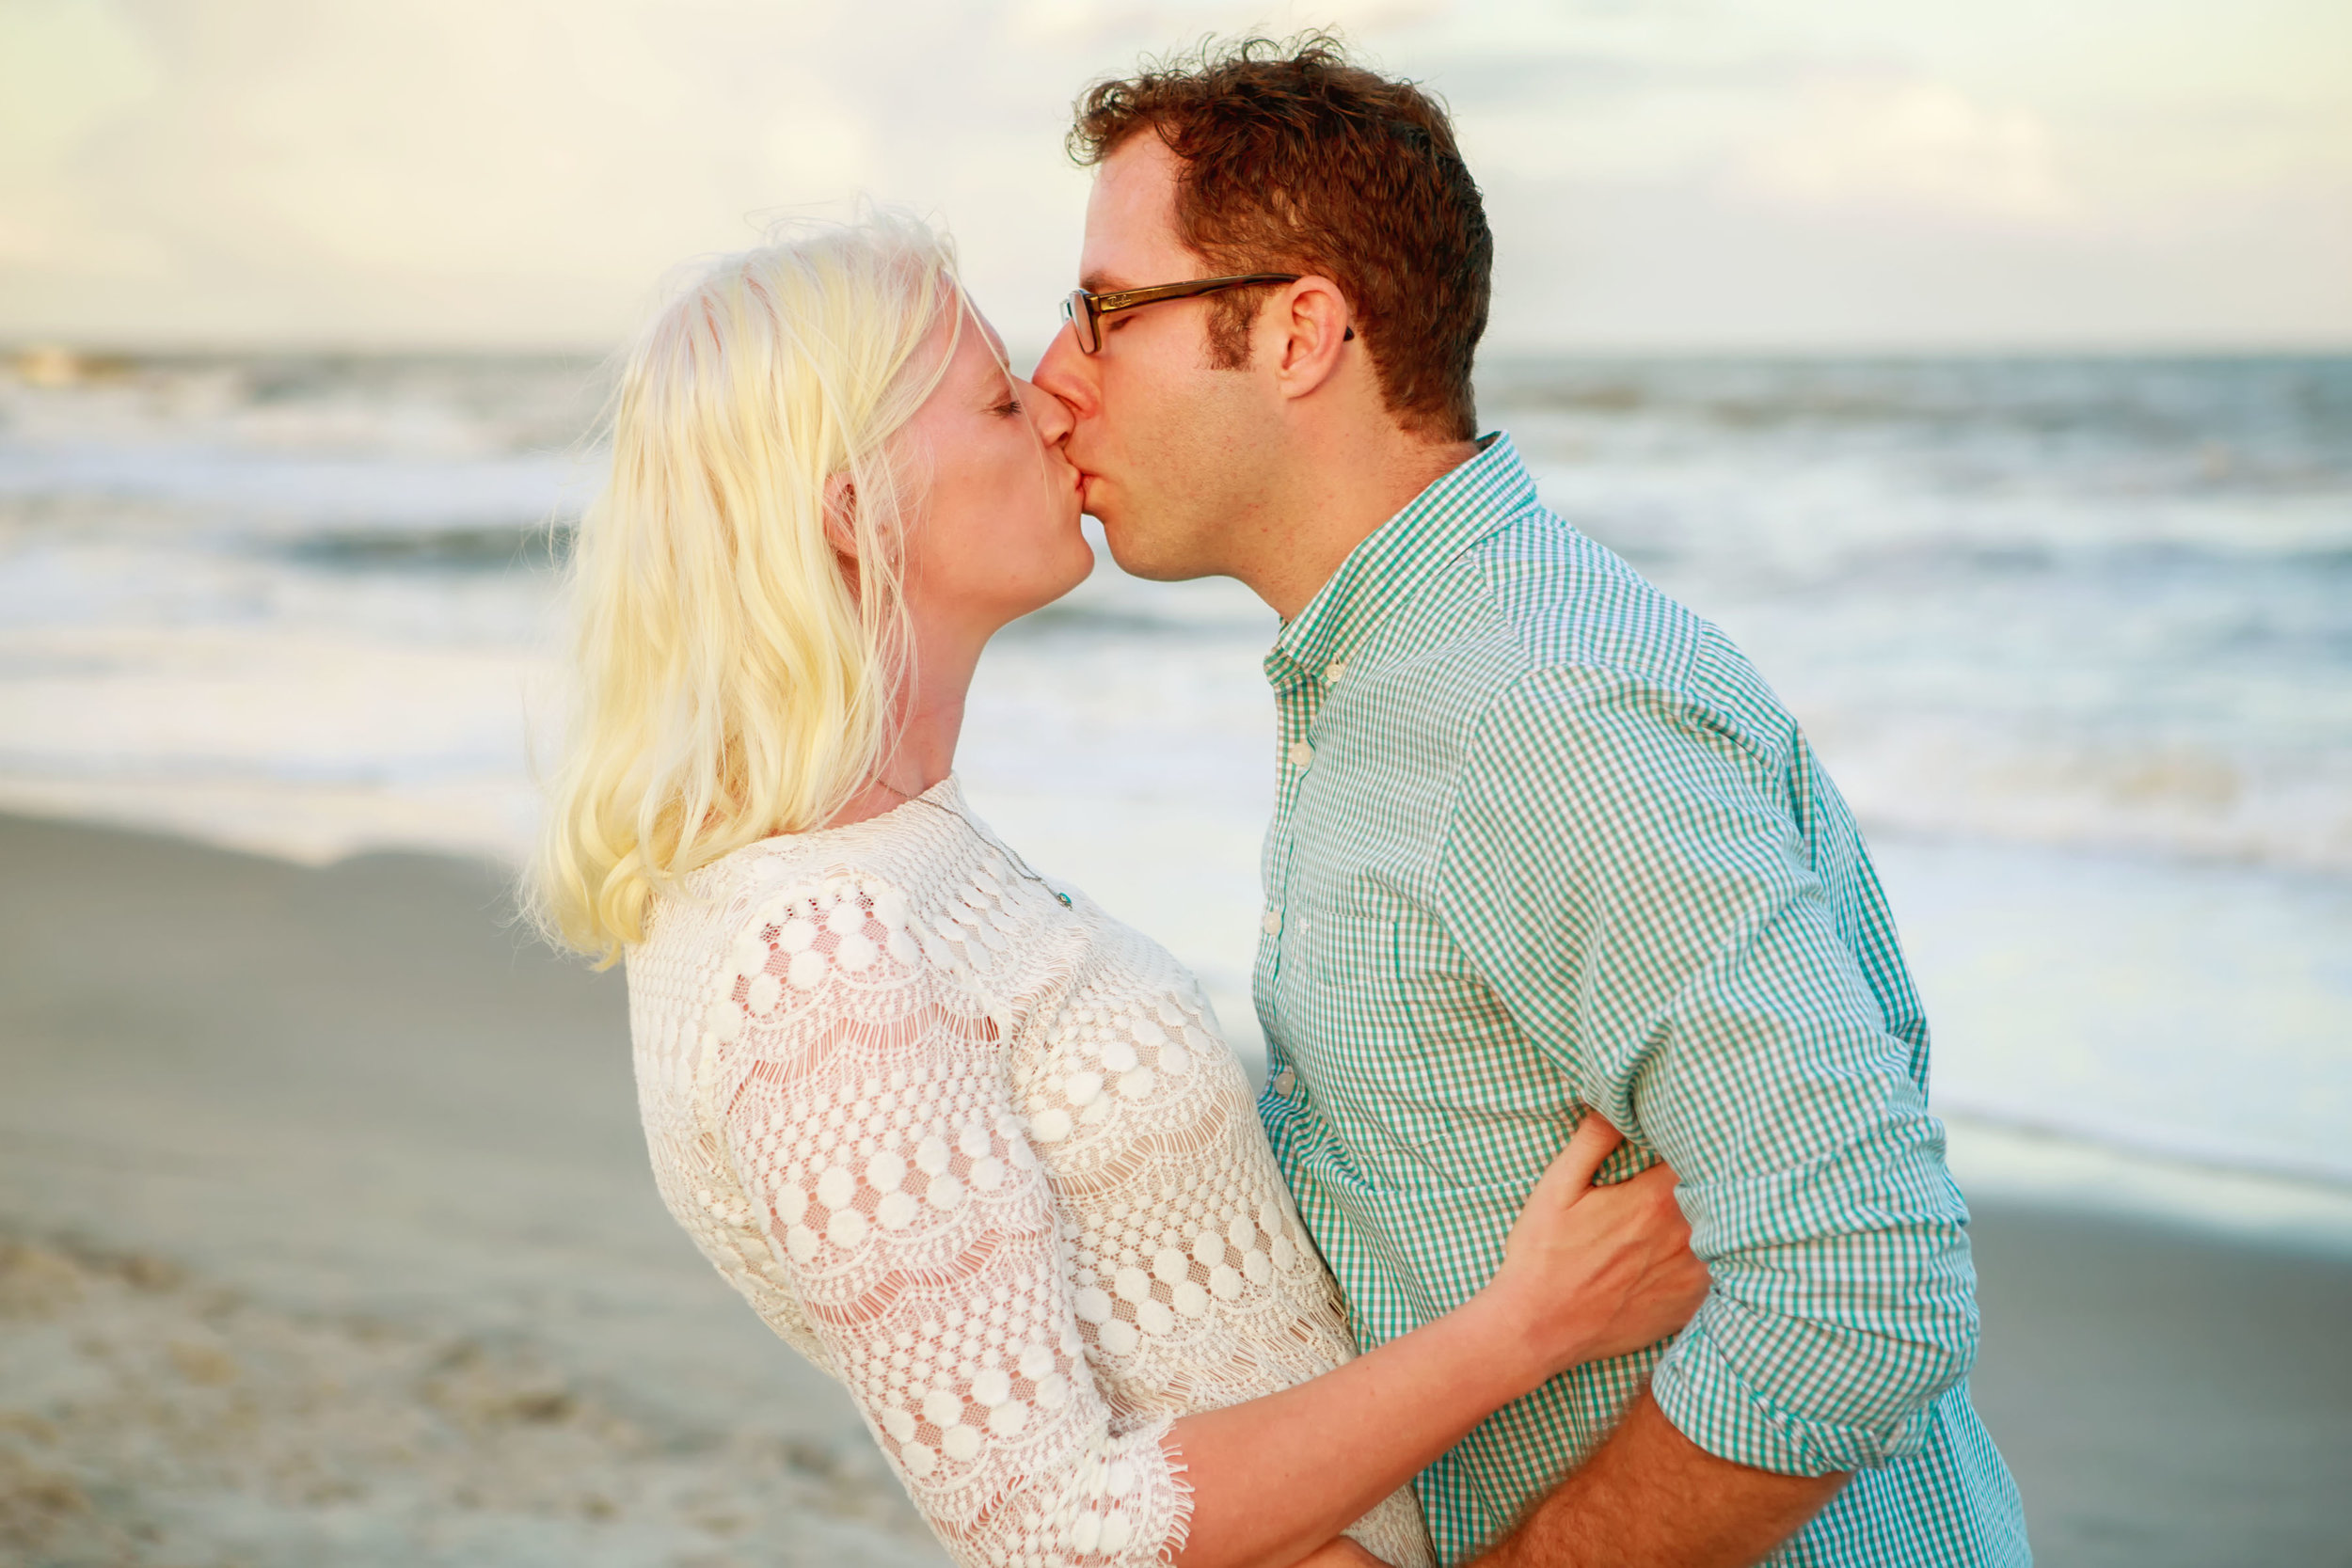 Fort_Fisher_Photographer_Engagement_Tiffany_Abruzzo_Photography_43.jpg